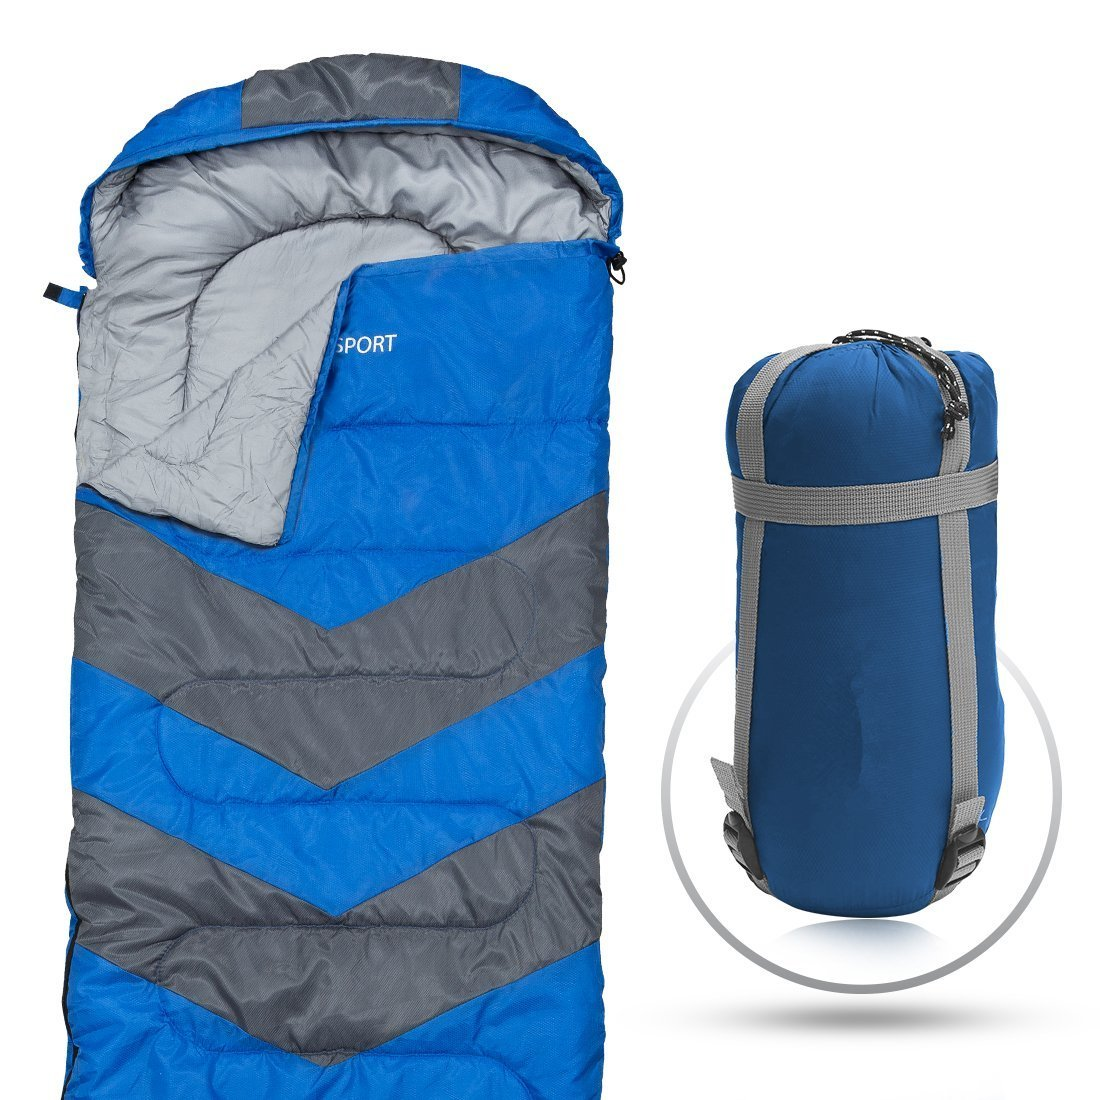 Abco Tech Sleeping Bag シュラーフ – Envelope Lightweight Portable, Waterproof, Comfort With Compression Sack (並行輸入品) B07C4VDQJR  Blue One Size